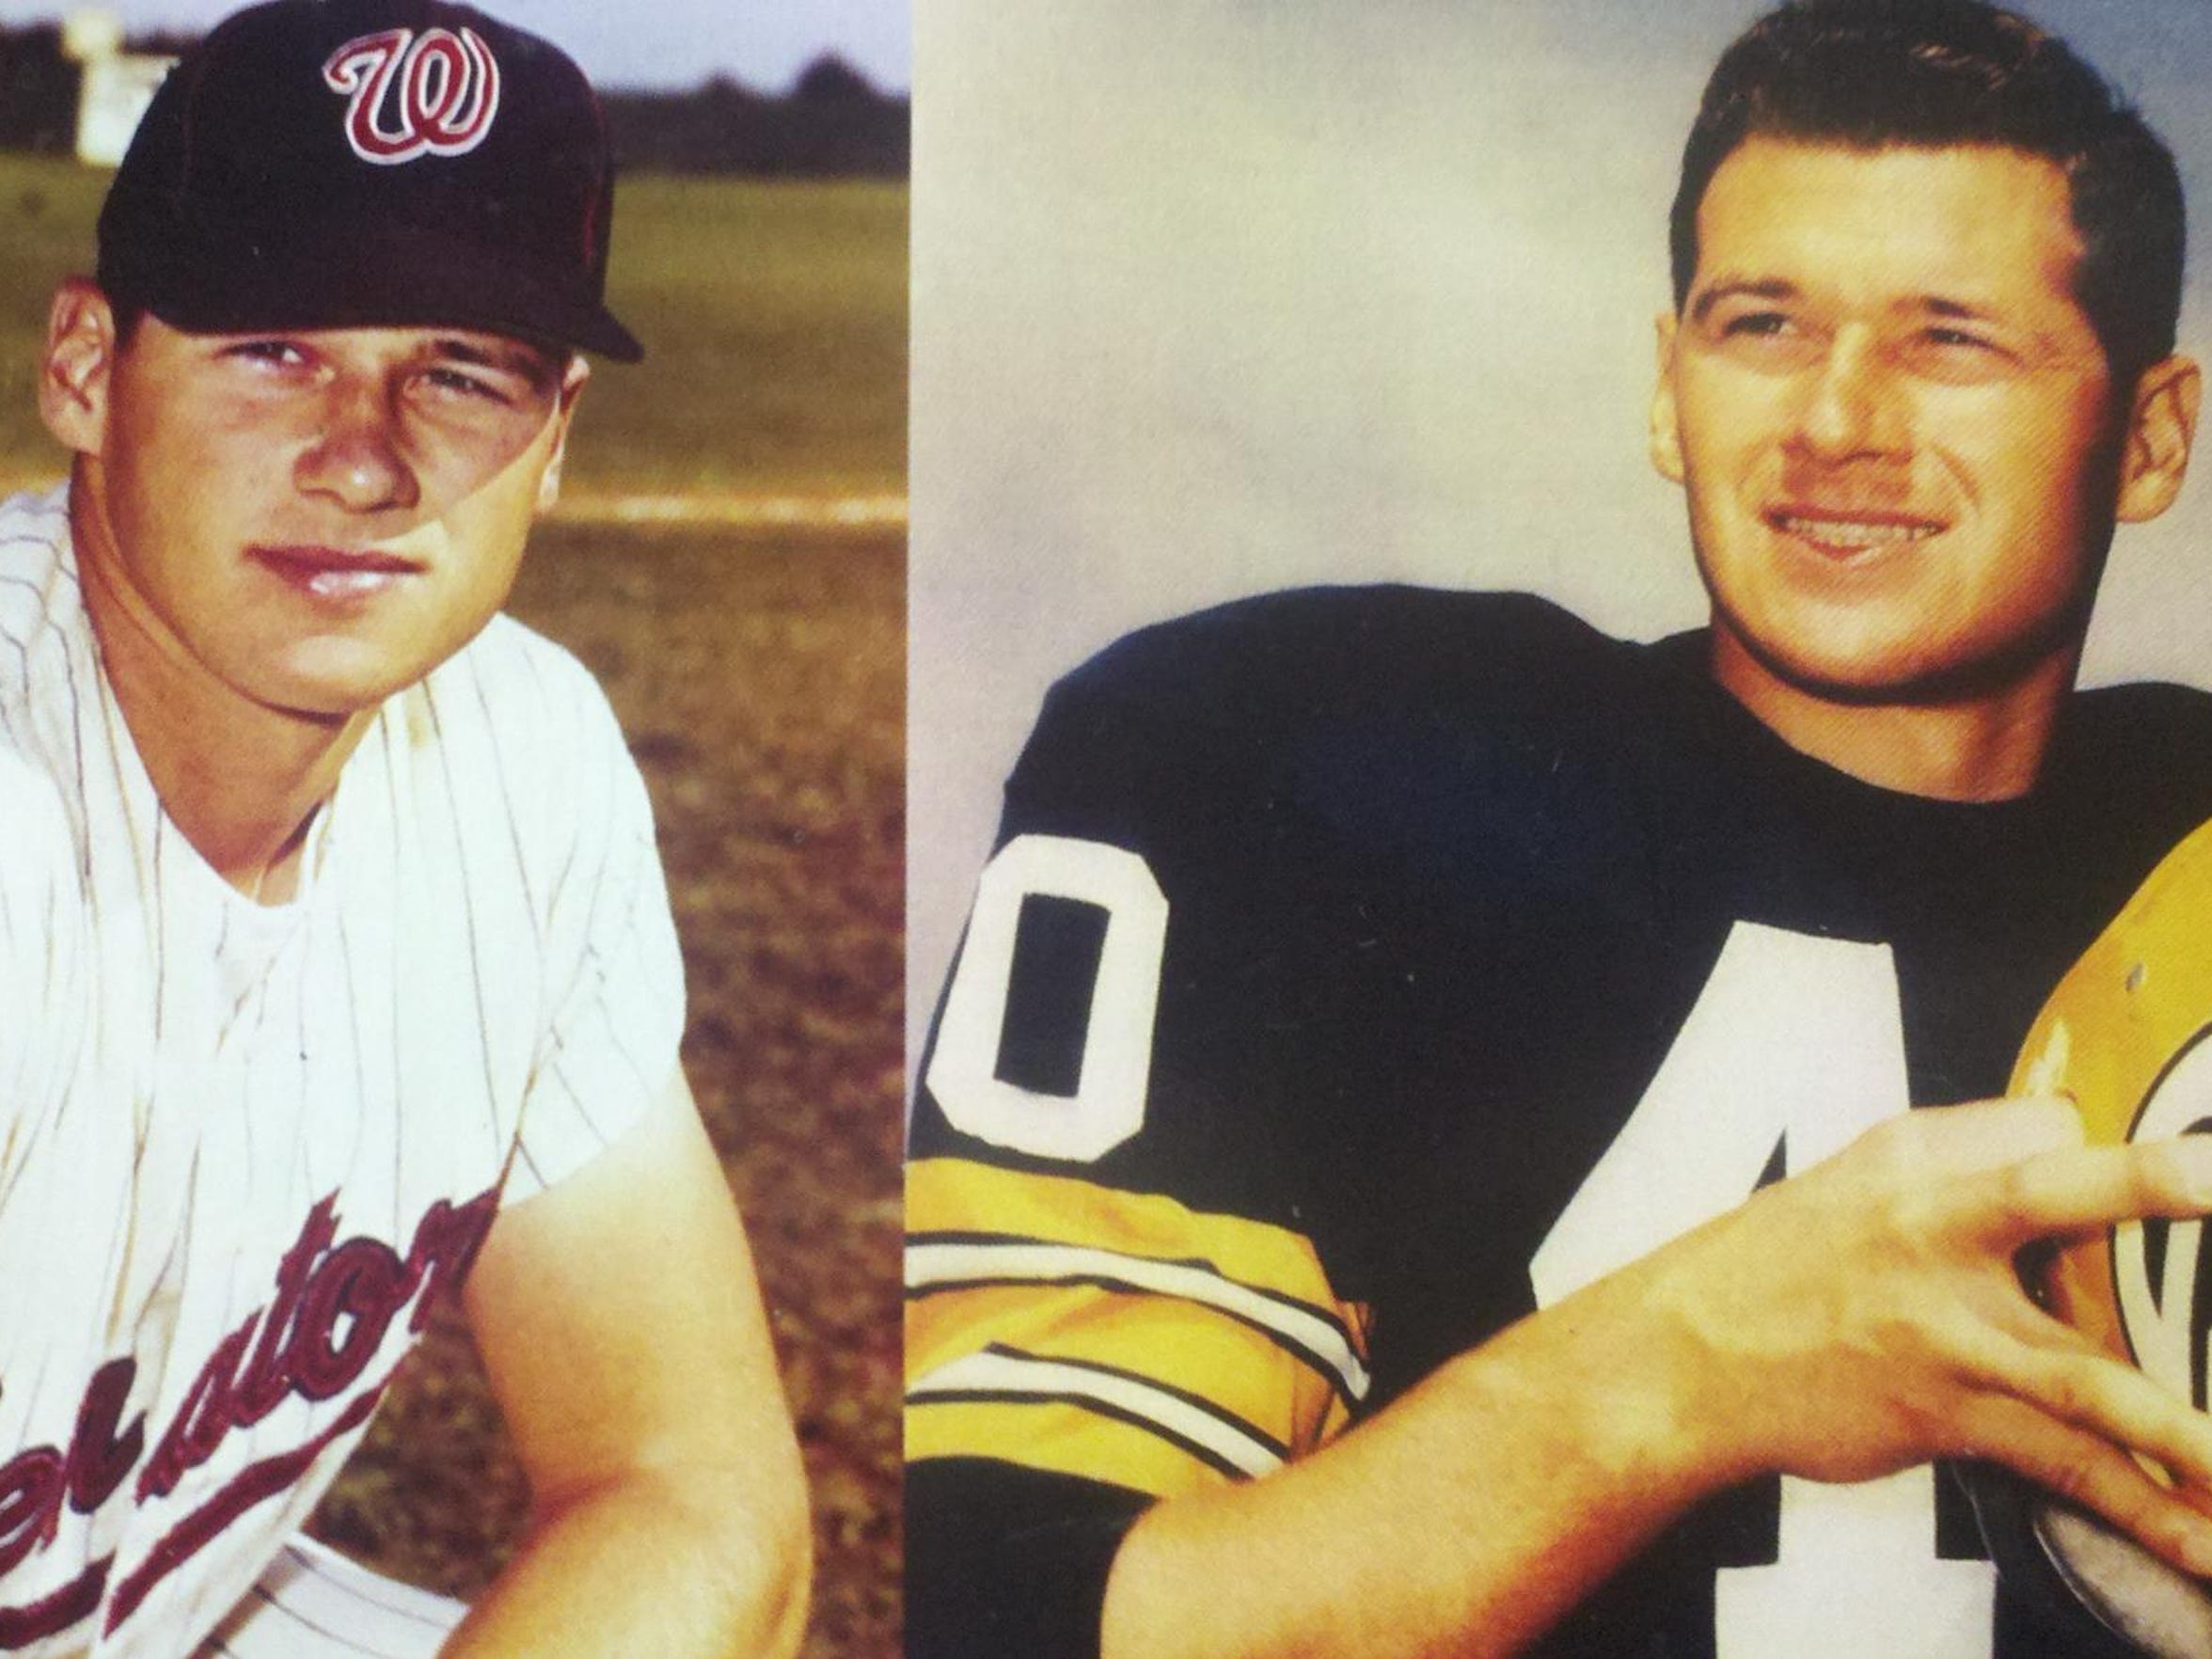 During his professional career, Tom Brown played for the Senators and Packers.